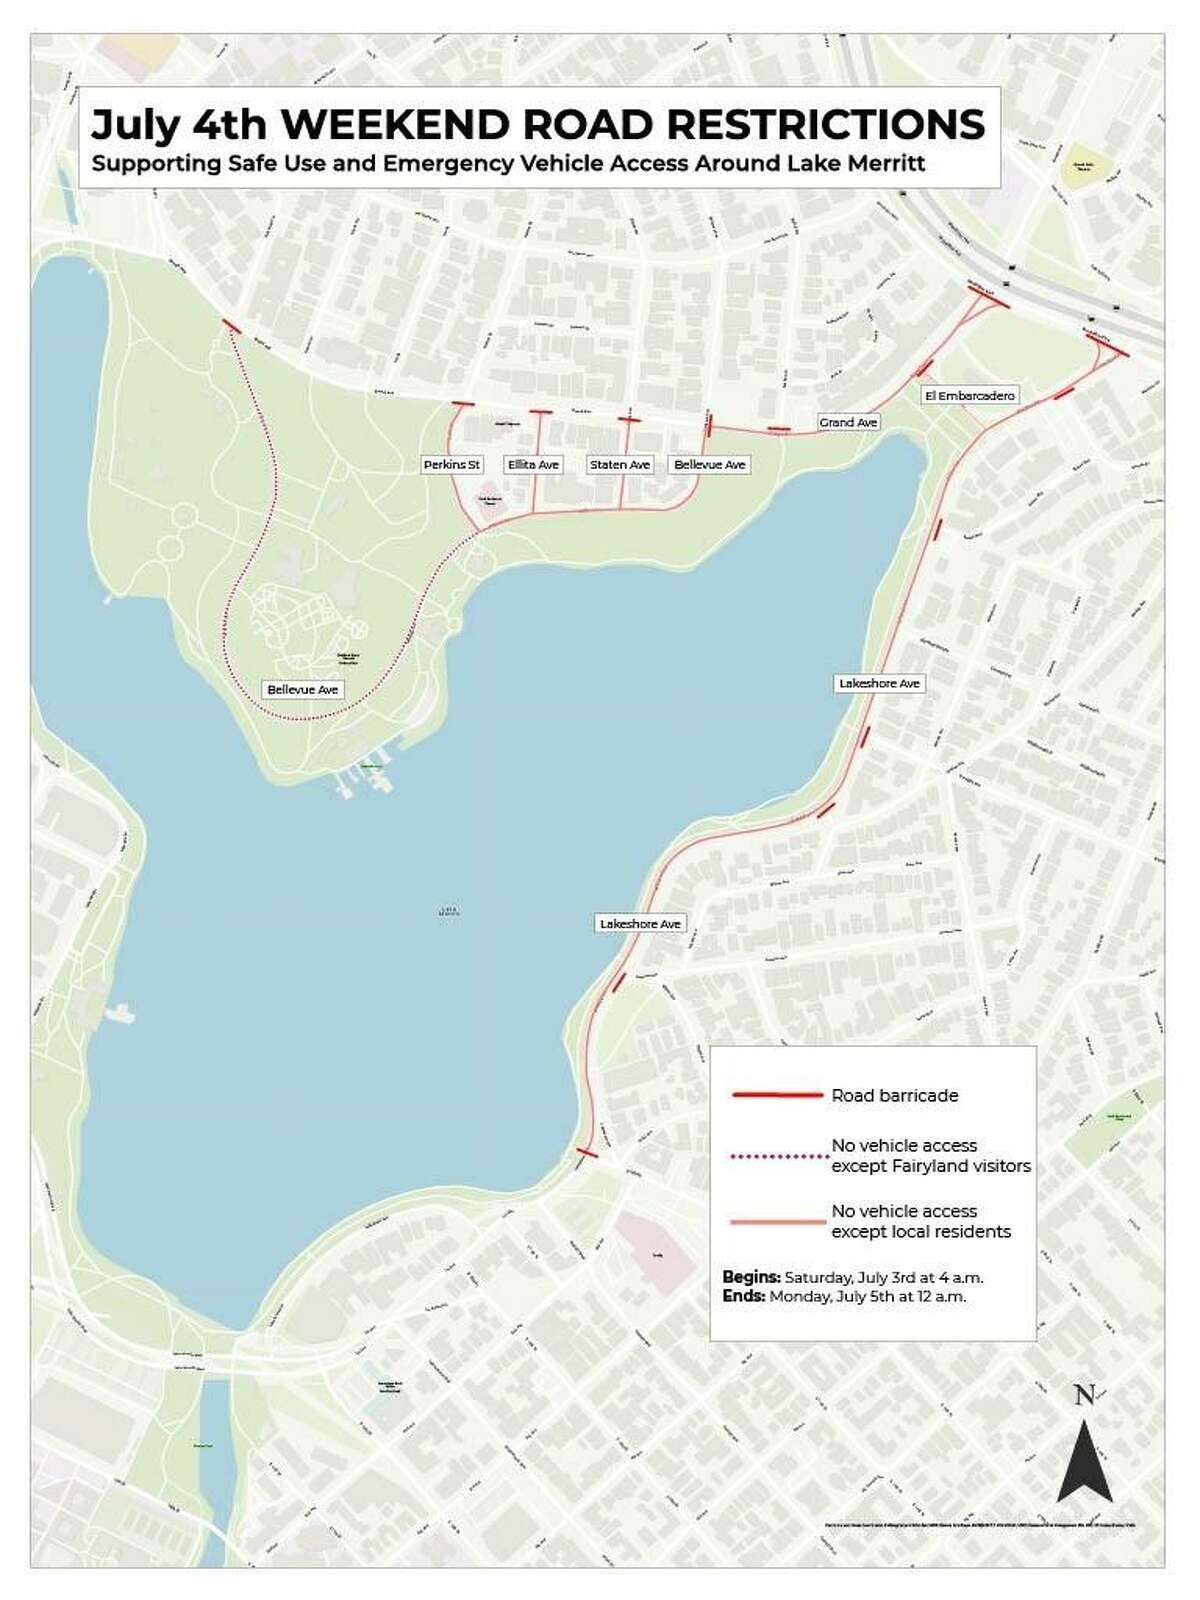 Access points to Grizzly Peak and Lake Merritt will be closed to reduce crowding throughout the holiday weekend.